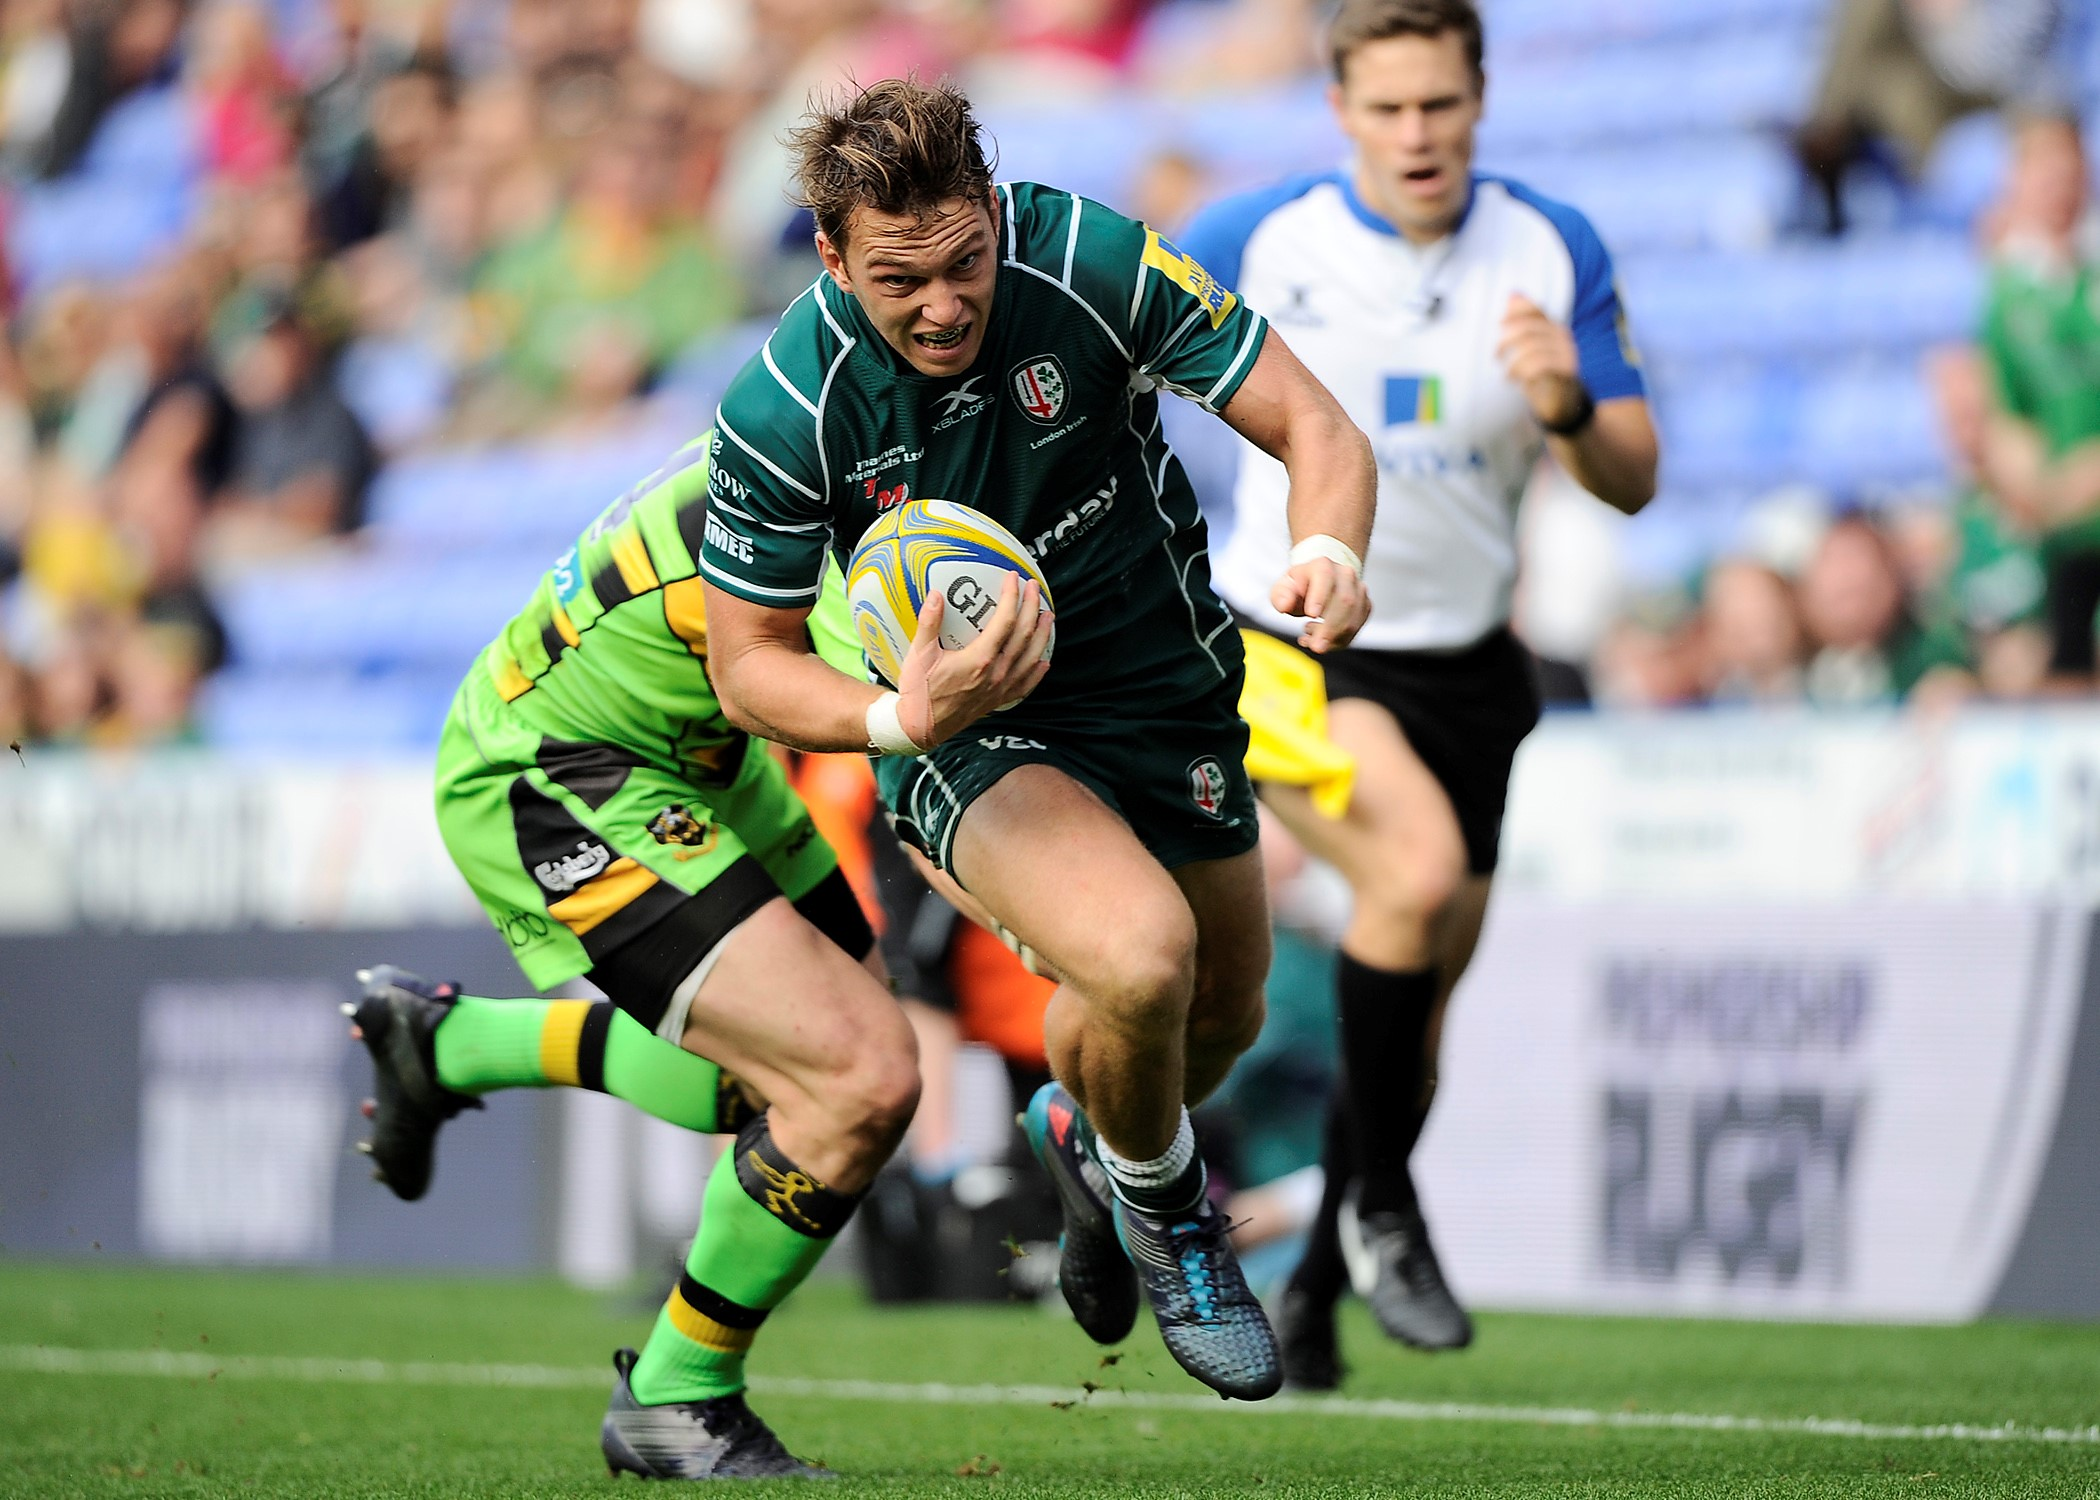 Irish wing Alex Lewington is moving to Saracens. Picture: David M.Moore.